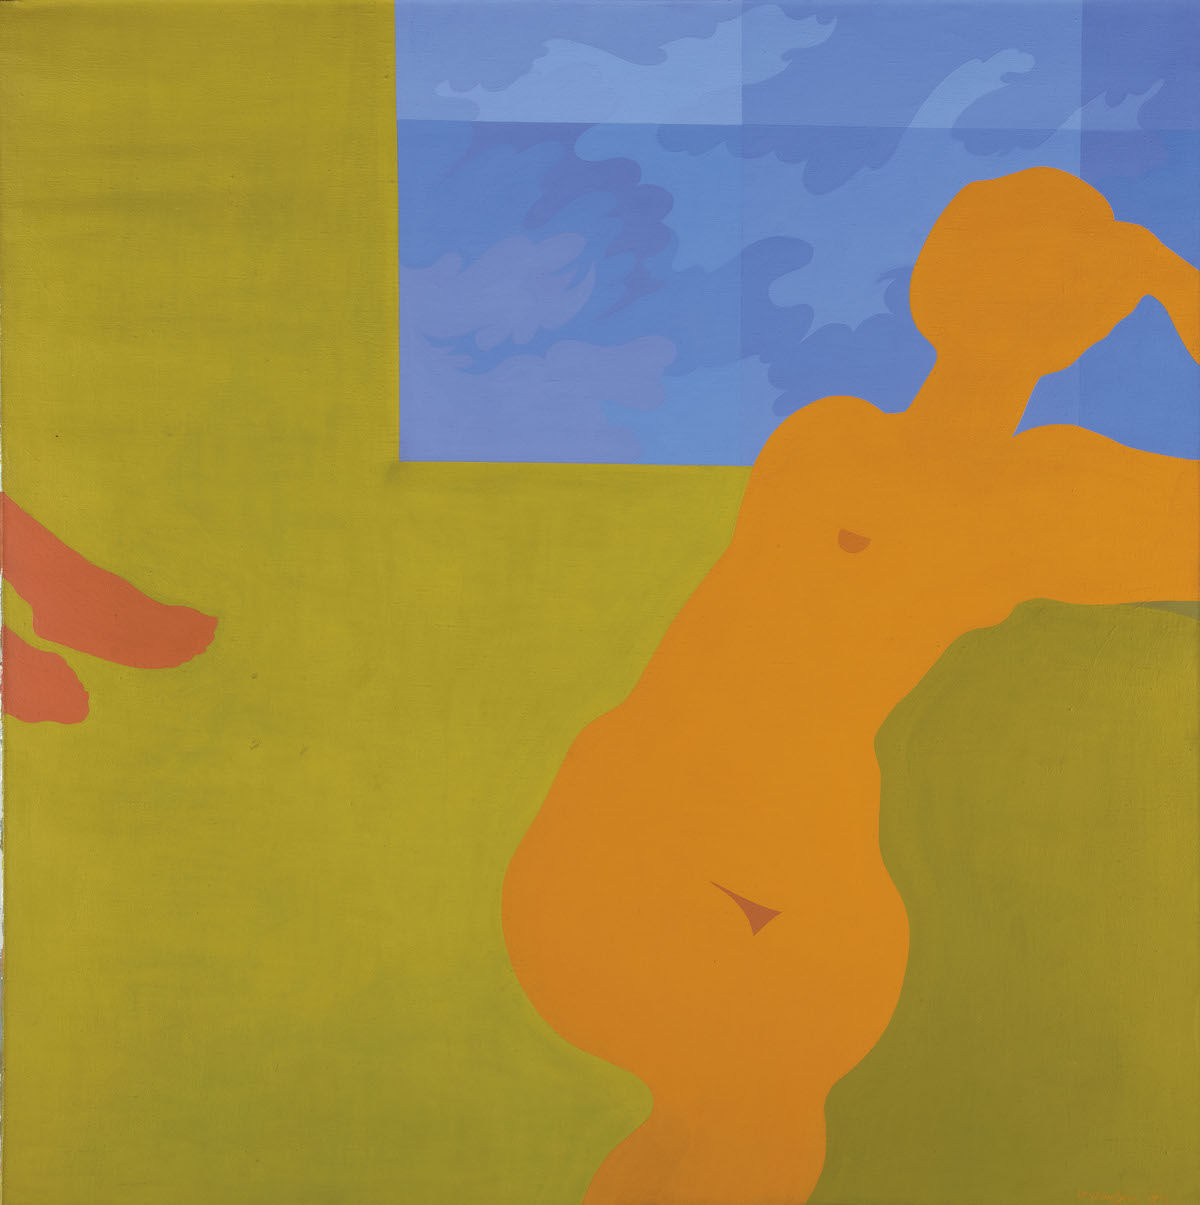 Kay WalkingStick, April Contemplating May, 1972, acrylic on canvas. © Kay WalkingStick. Courtesy of the artist and the June Kelly Gallery.